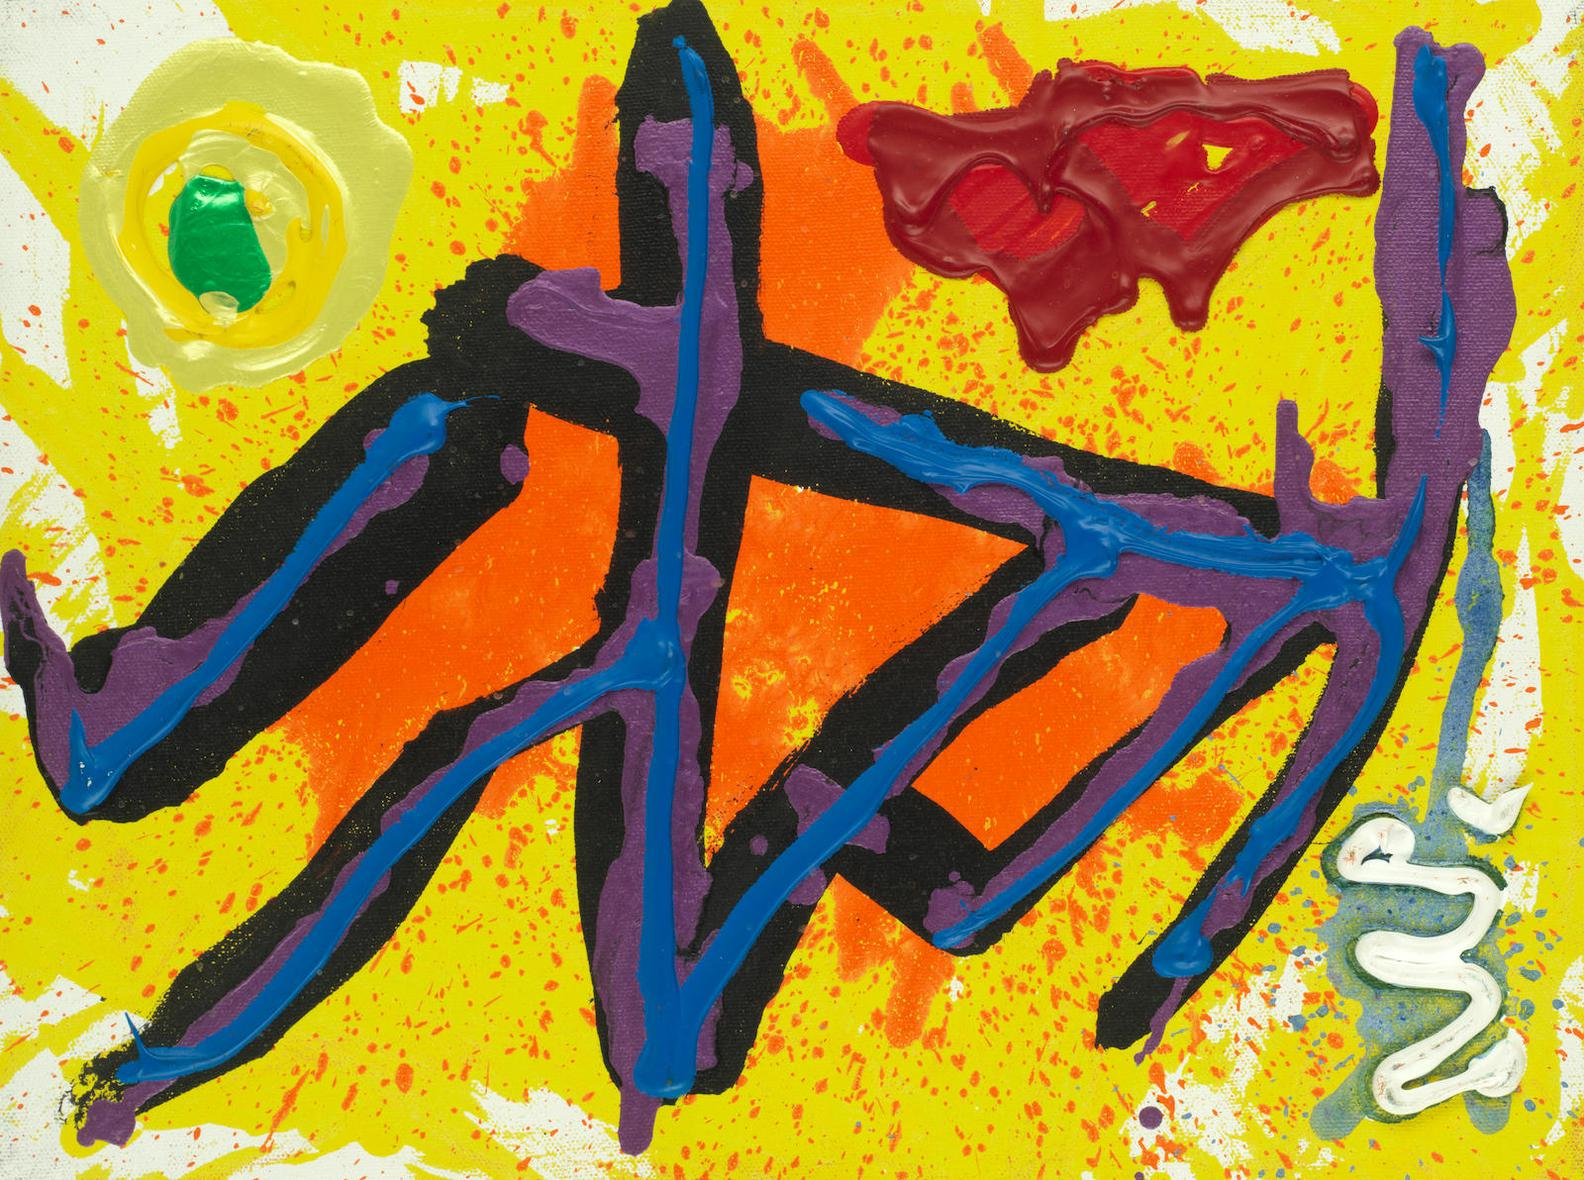 John Hoyland - A Year Gone-1994